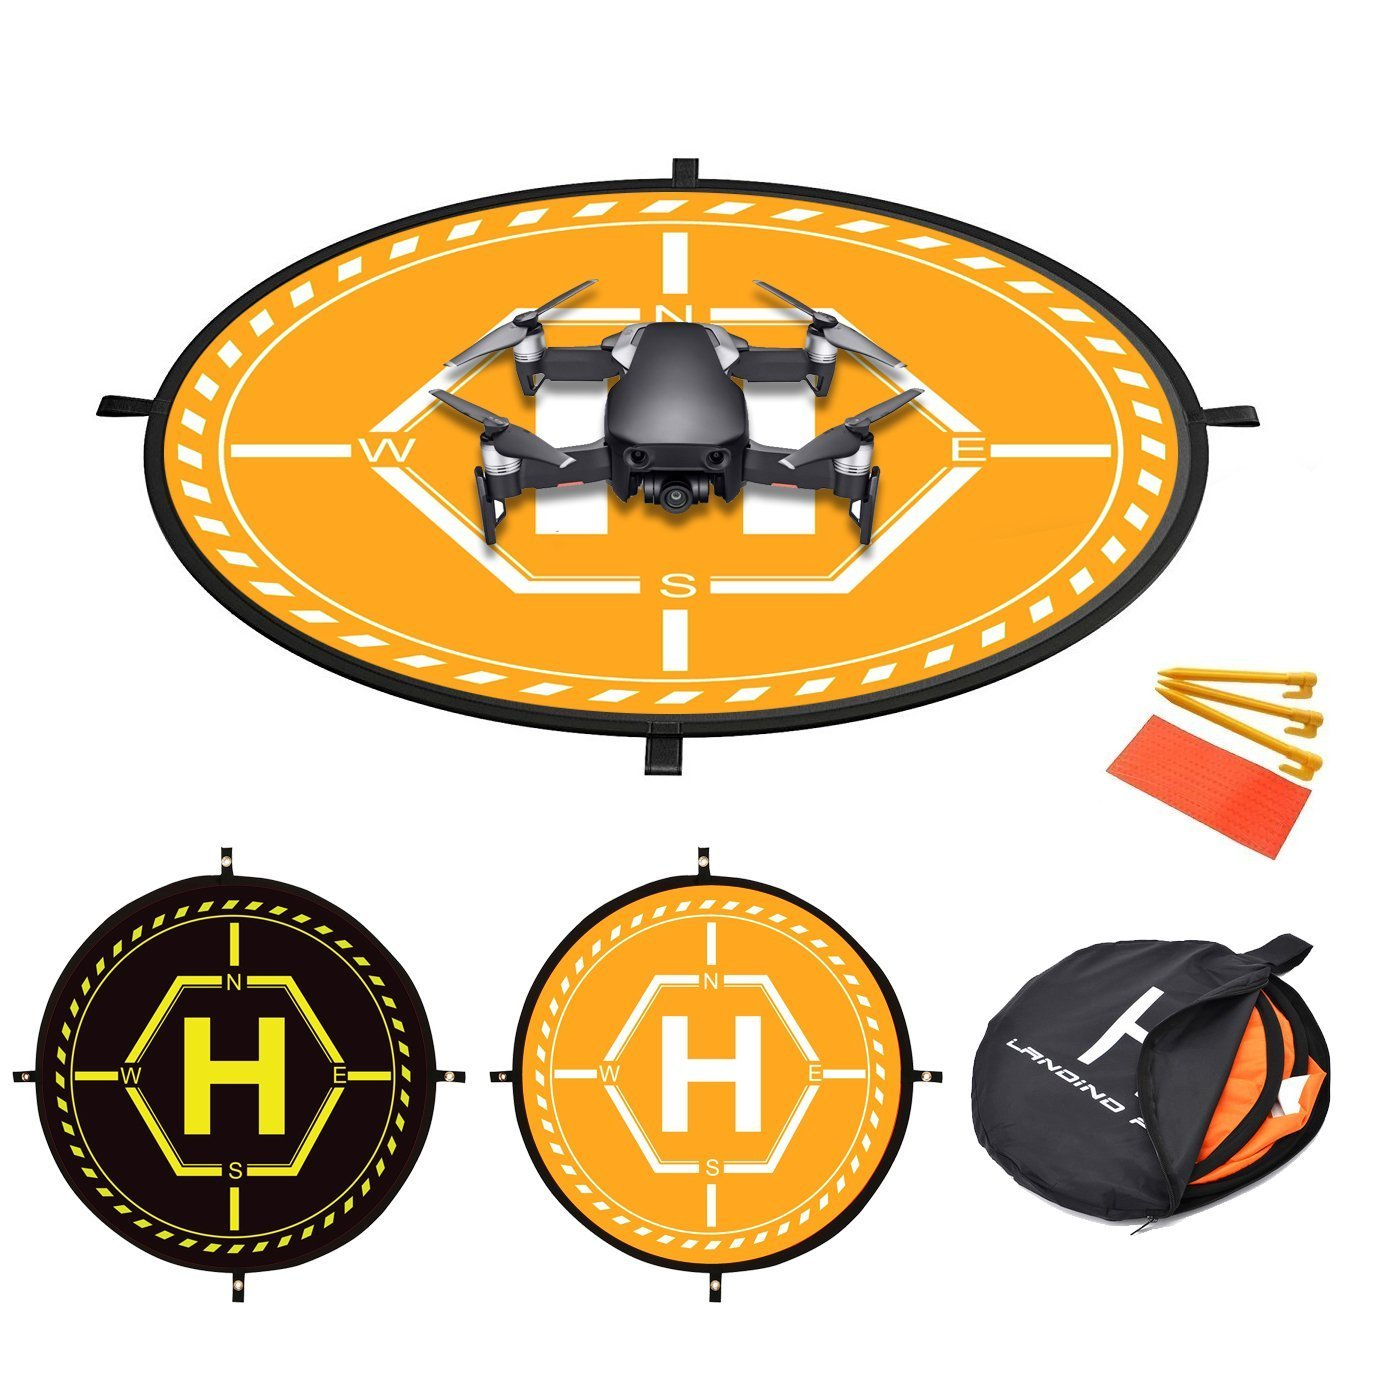 Fstop Labs 36 inch RC Drone Waterproof Collapsible Foldable Landing Pad for DJI Tello Mavic 2 Zoom Air Pro Platinum Phantom 3 4 Spark Accessories High Contrast